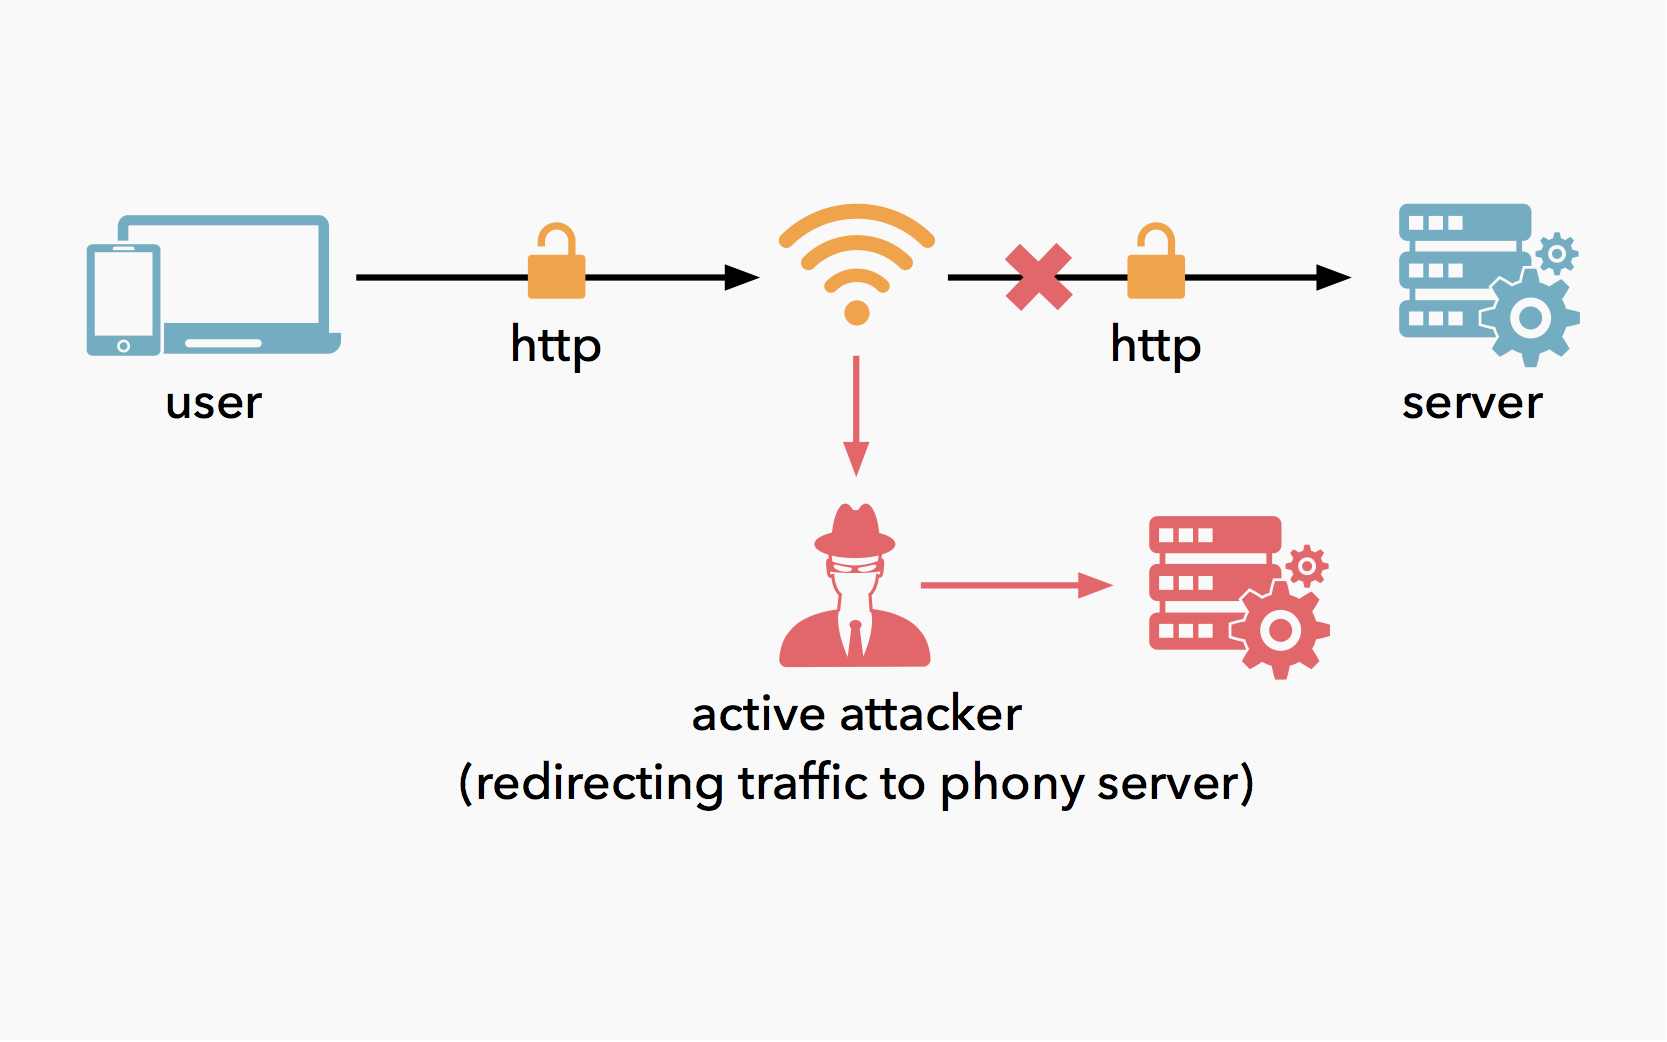 HTTP active attacker redirecting traffic to phony server.